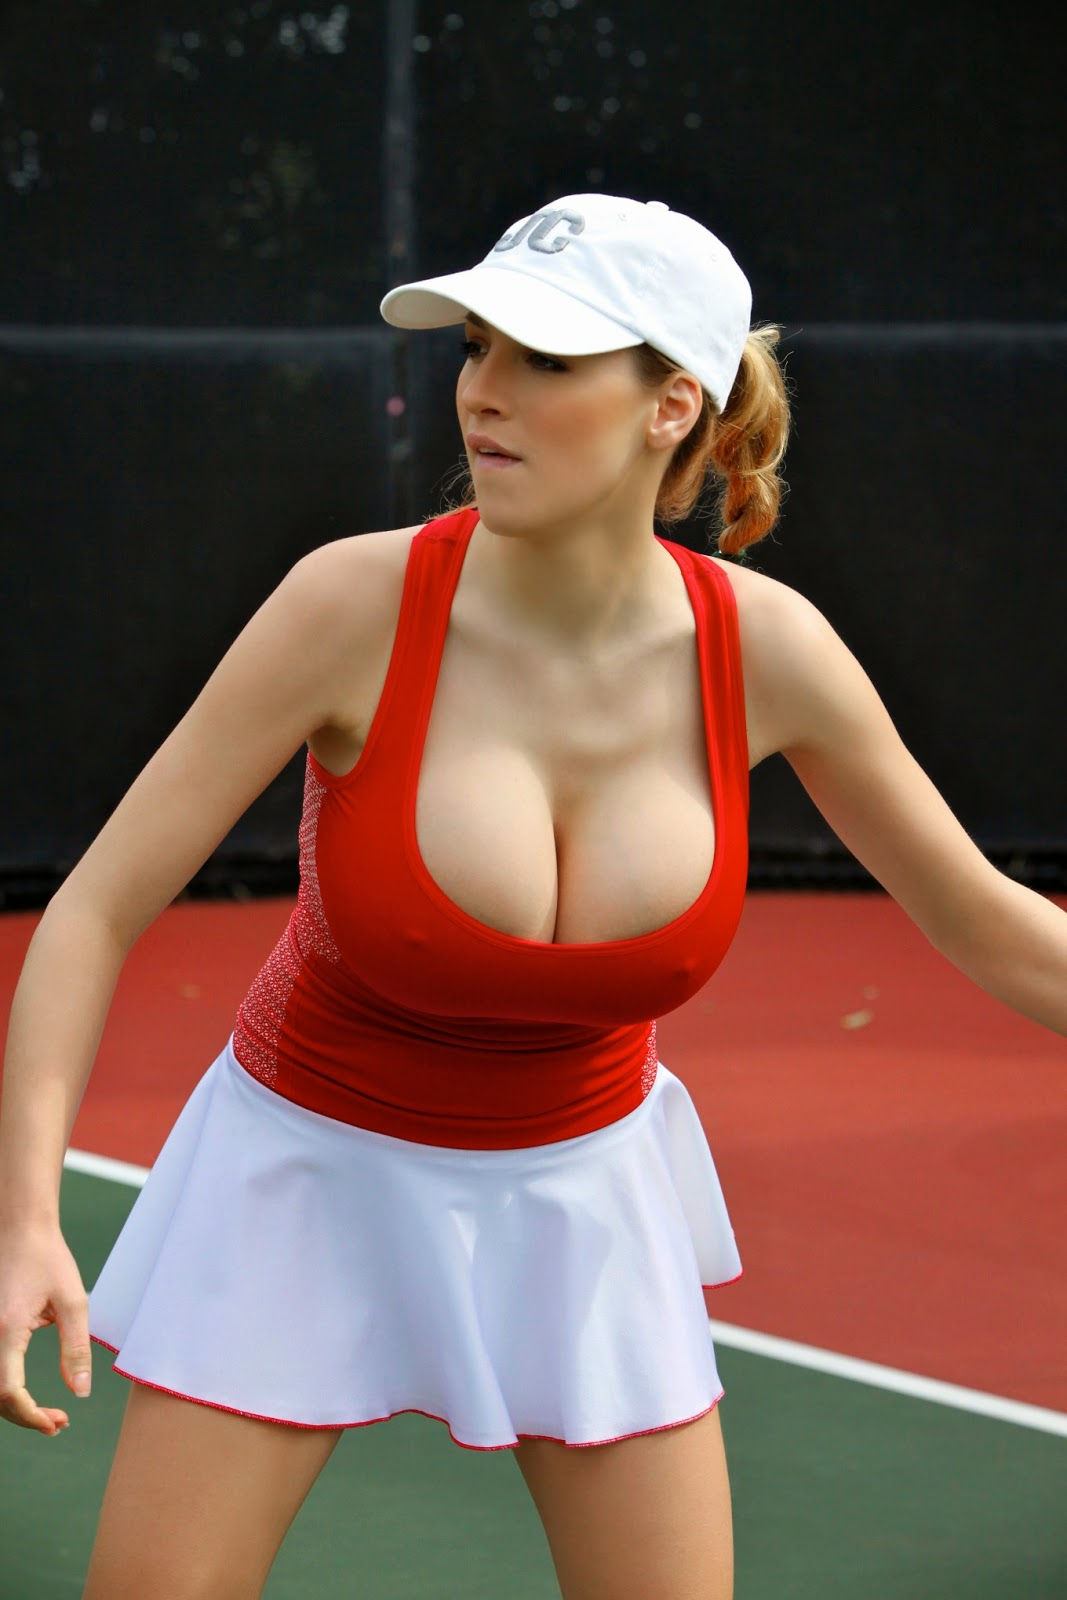 Jordan Carver Playing Hot Tennis Big Boobs Cleavage Show -9830